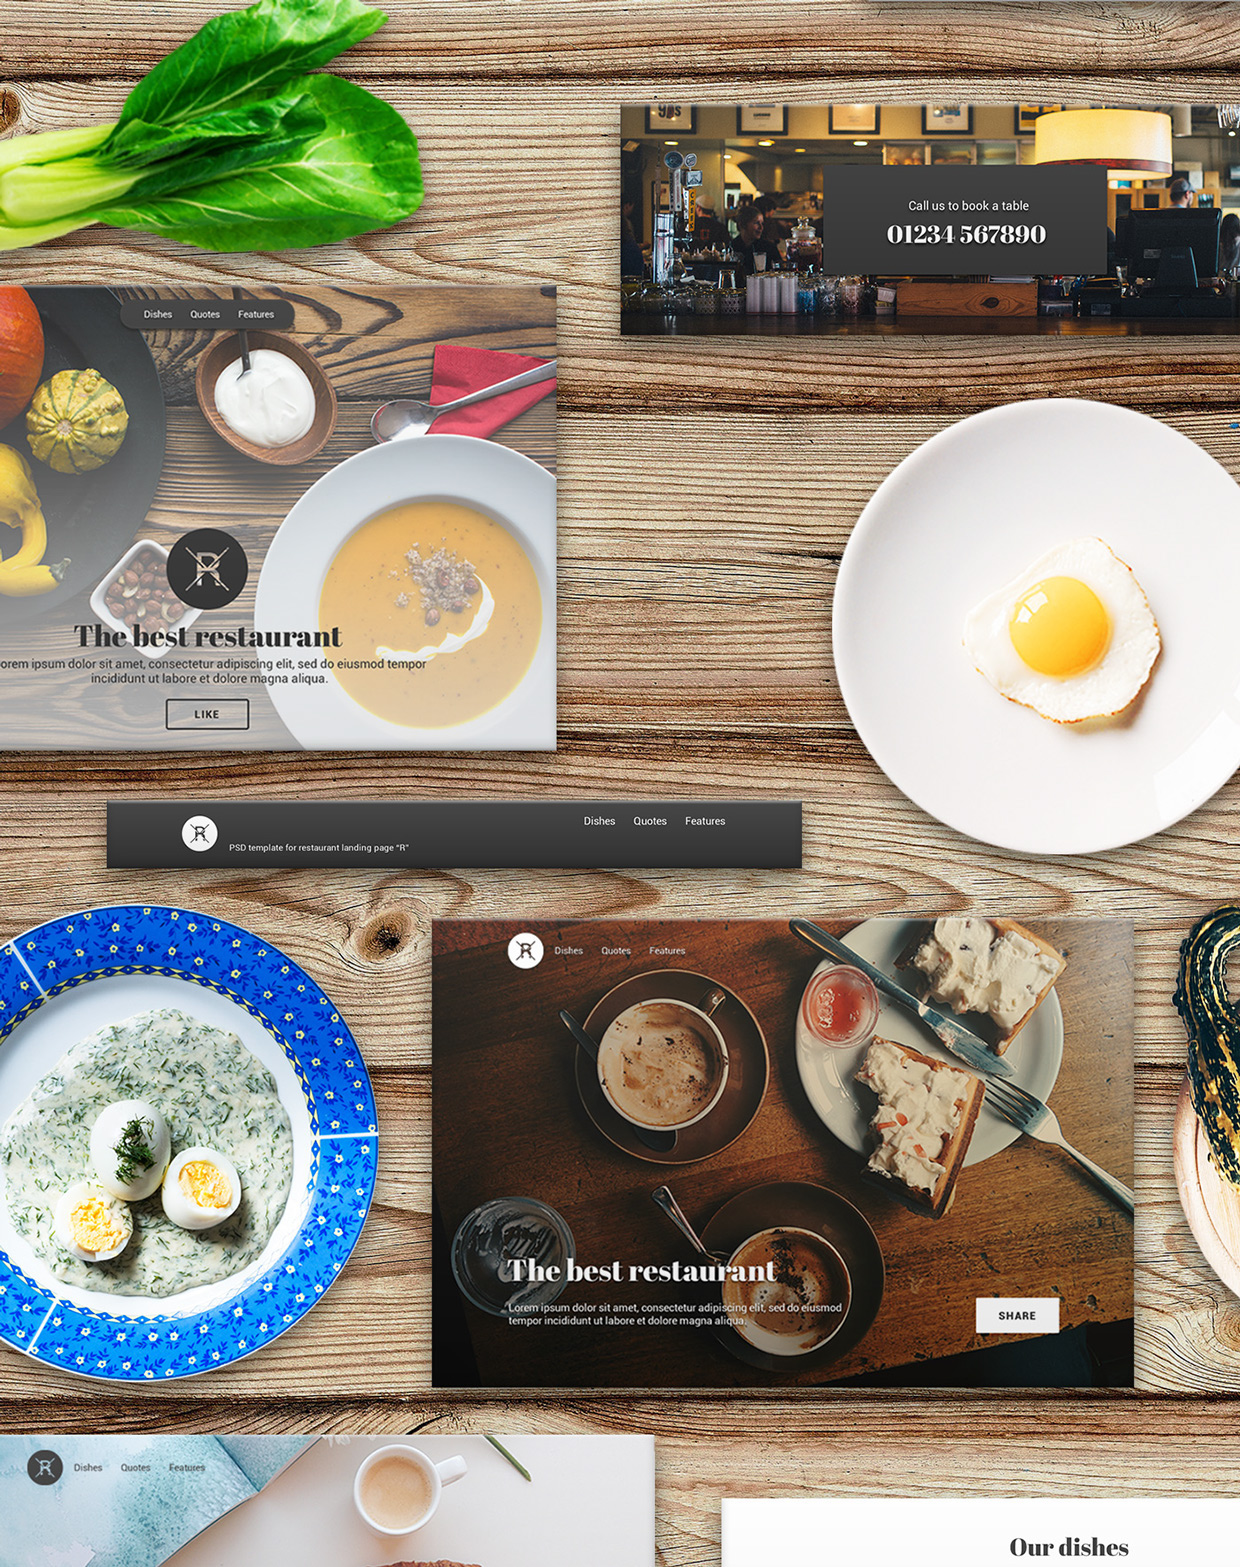 37 Free UX Psd Files of Restaurant Landing Page 2015  (3)